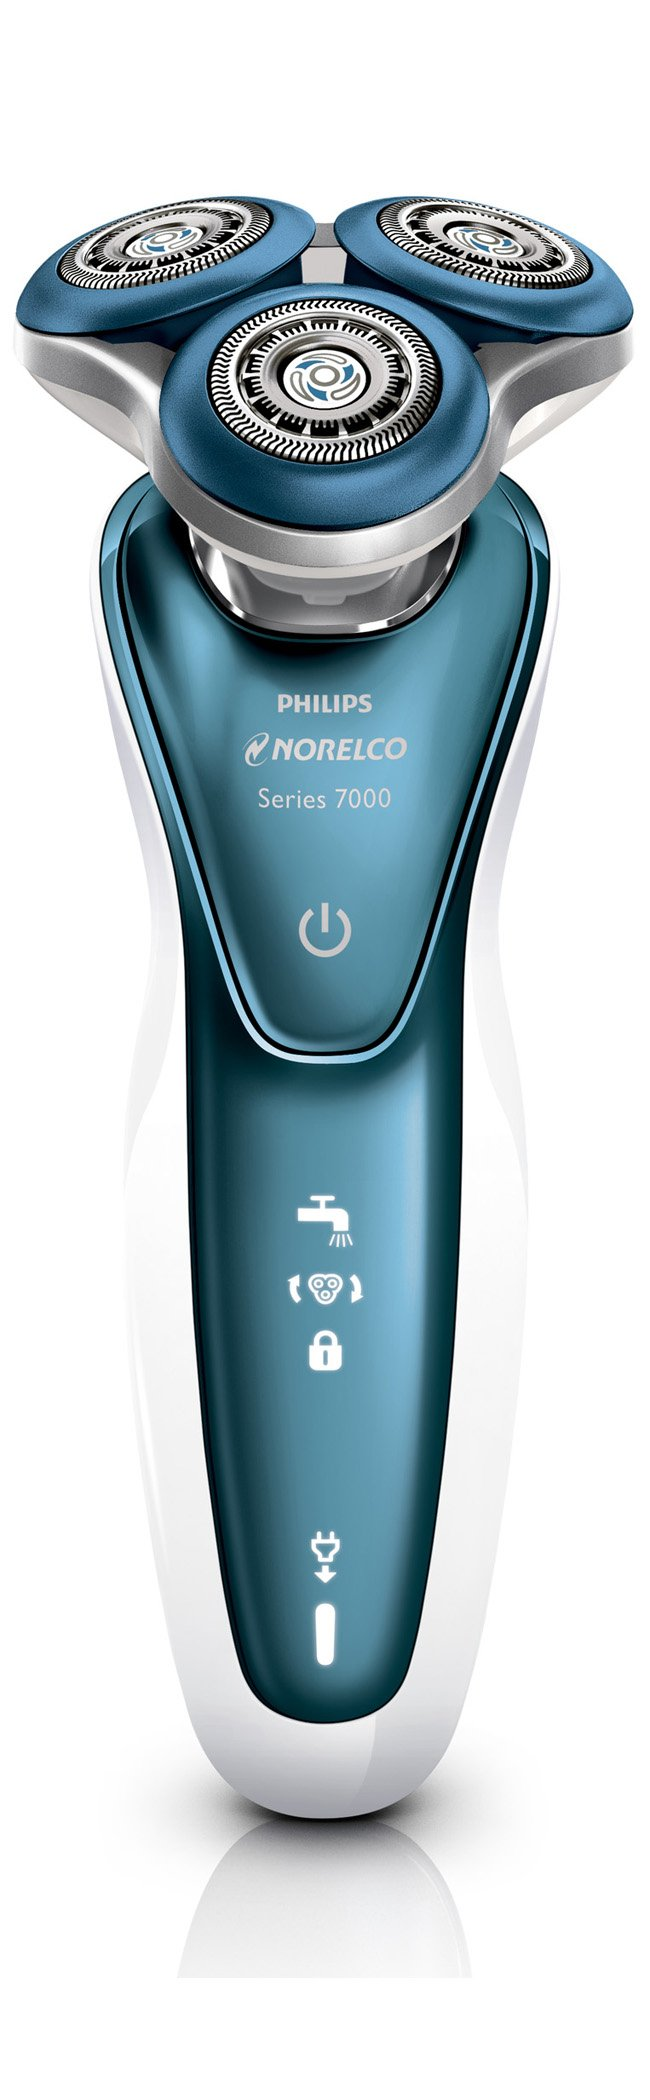 Philips Norelco Electric Shaver 7500 for Sensitive Skin by Philips Norelco (Image #8)